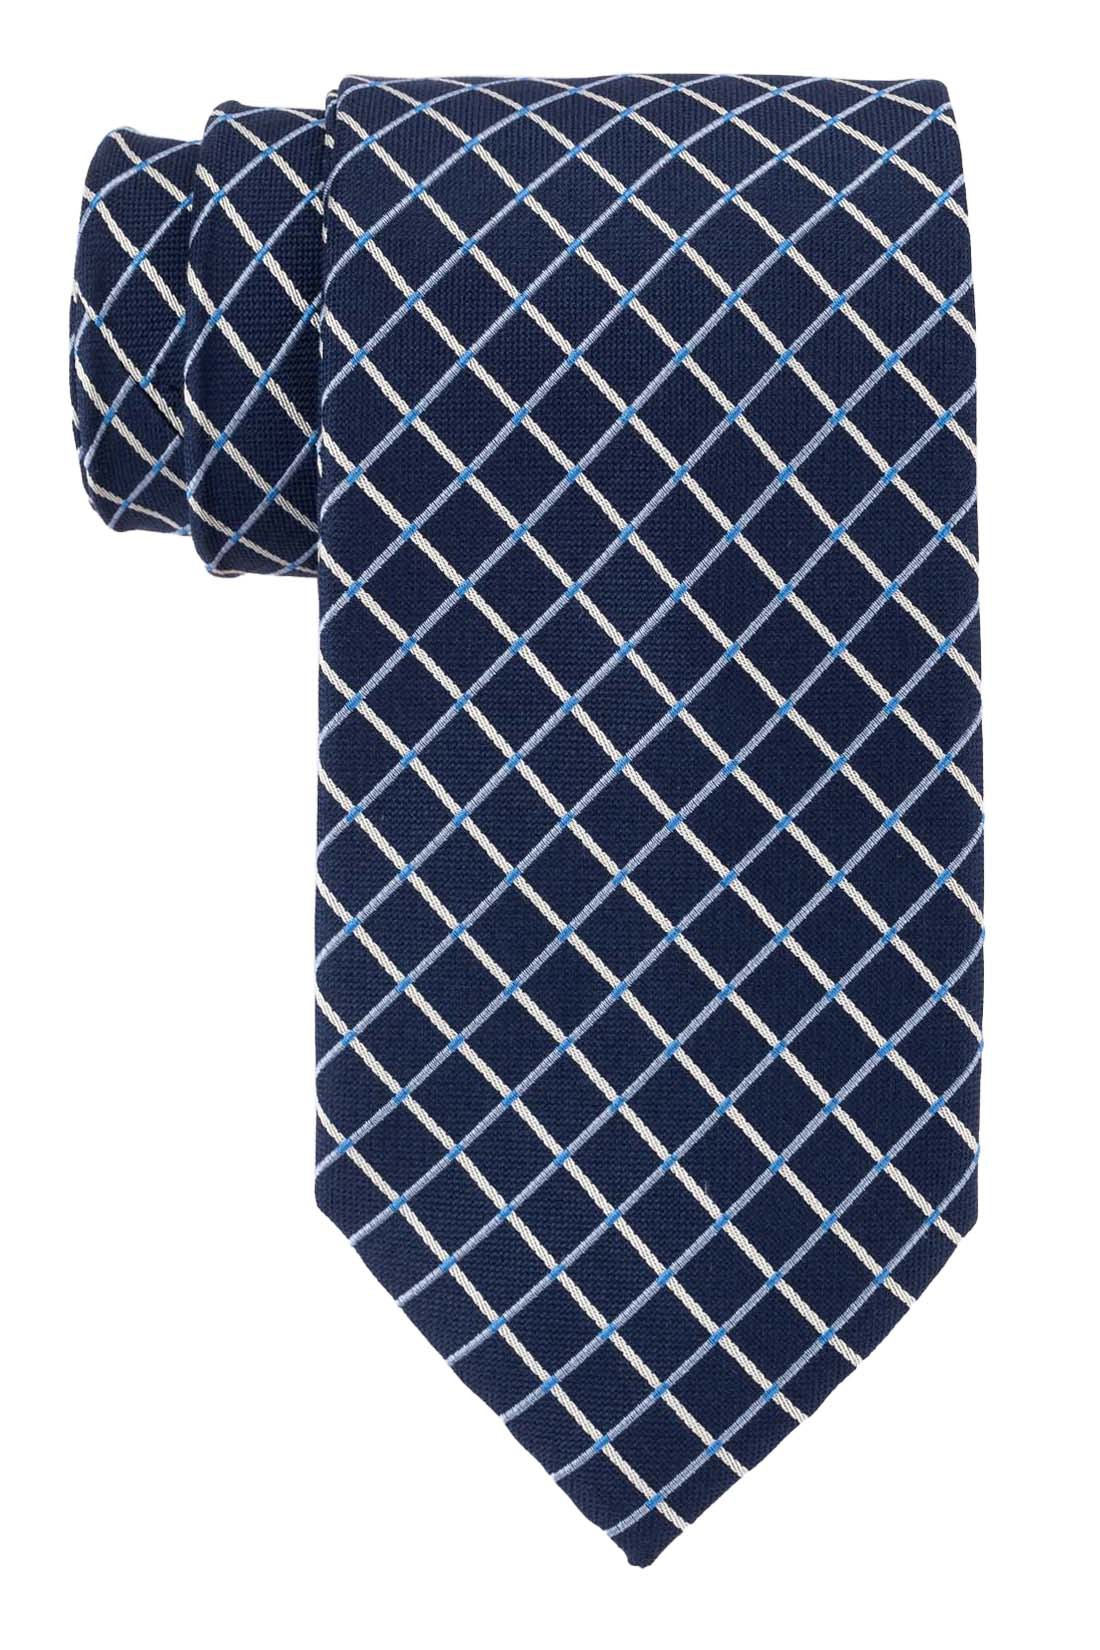 Power Plaid Navy and Sky Blue 100% Silk Necktie